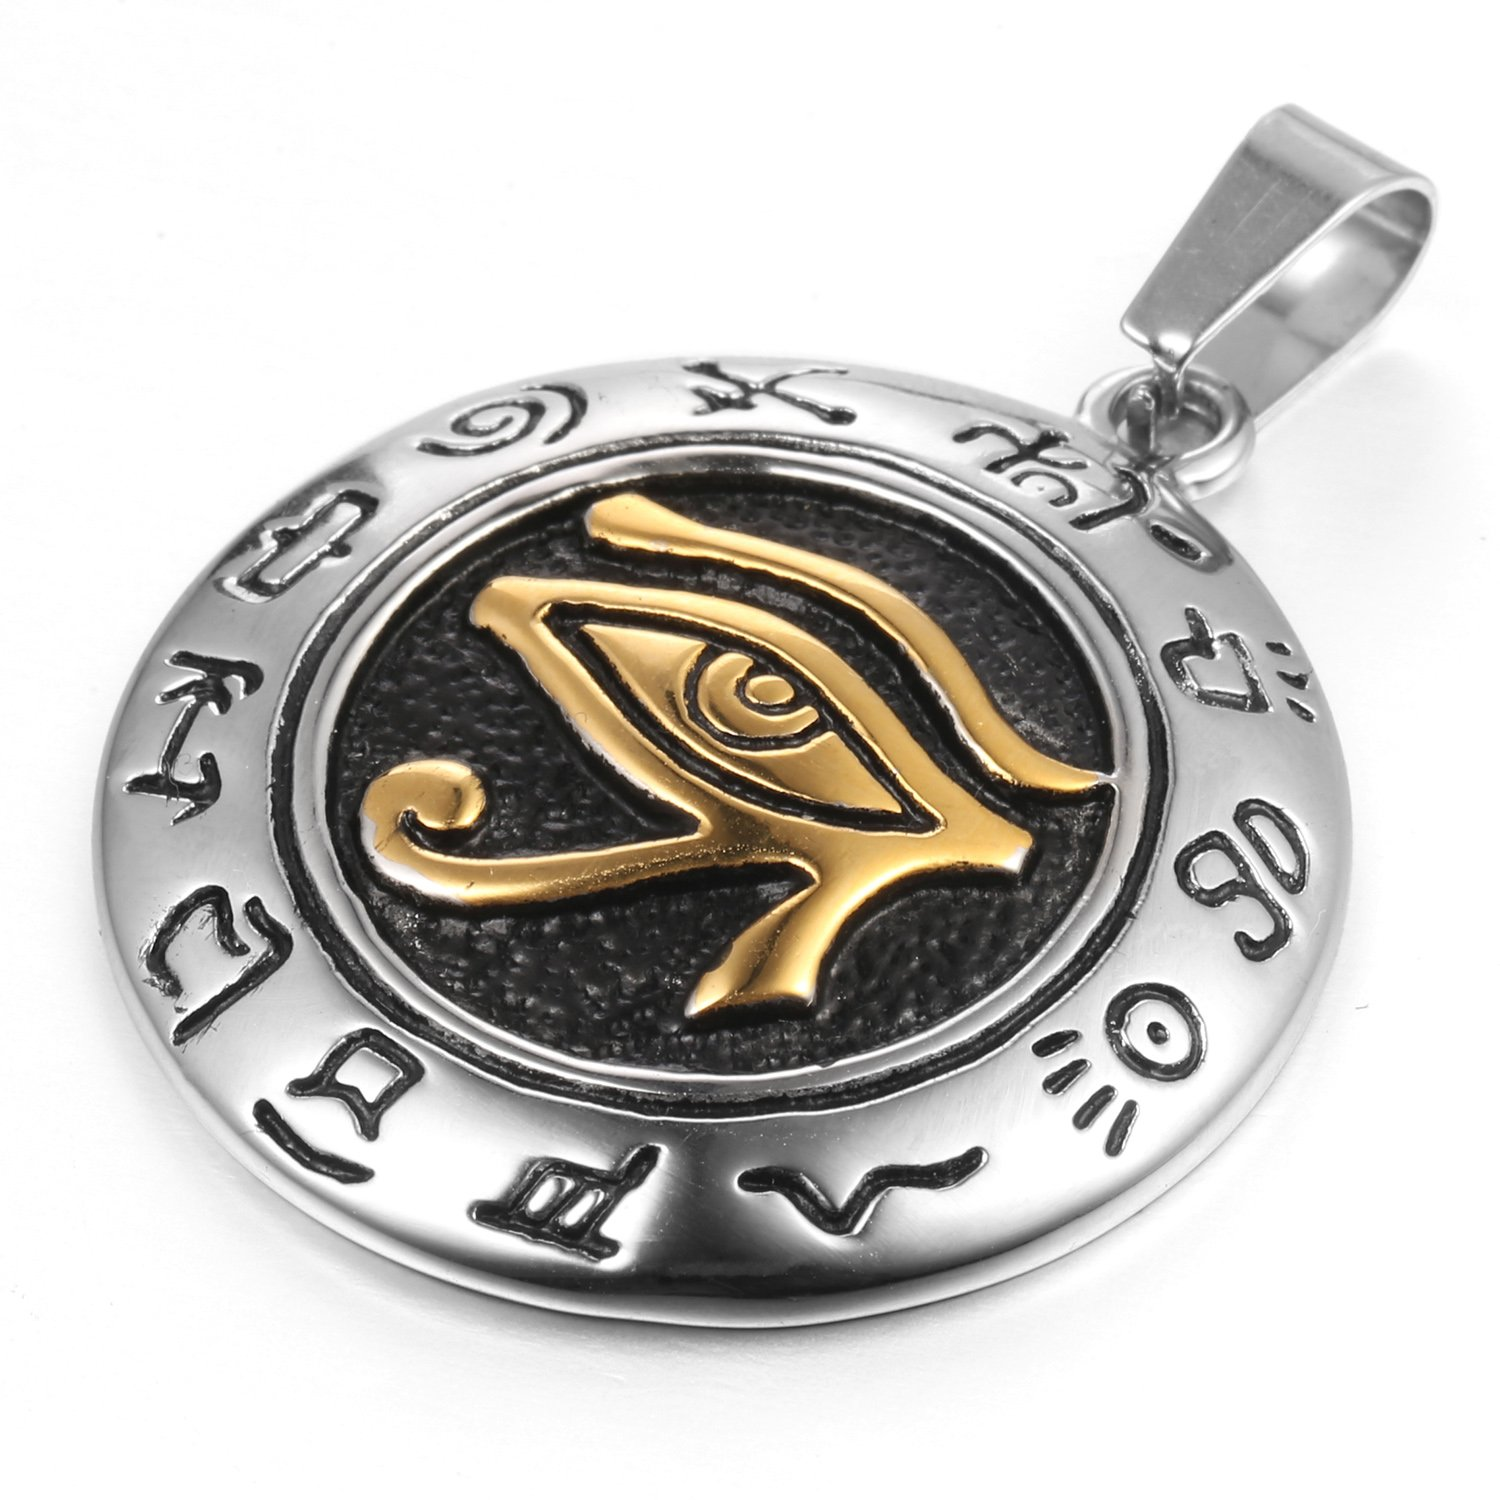 MENDINO Mens Stainless Steel Pendant Necklace Eygptian Eye of Horus Silver Gold Tone with a 22 inch Chain JPD0199SI